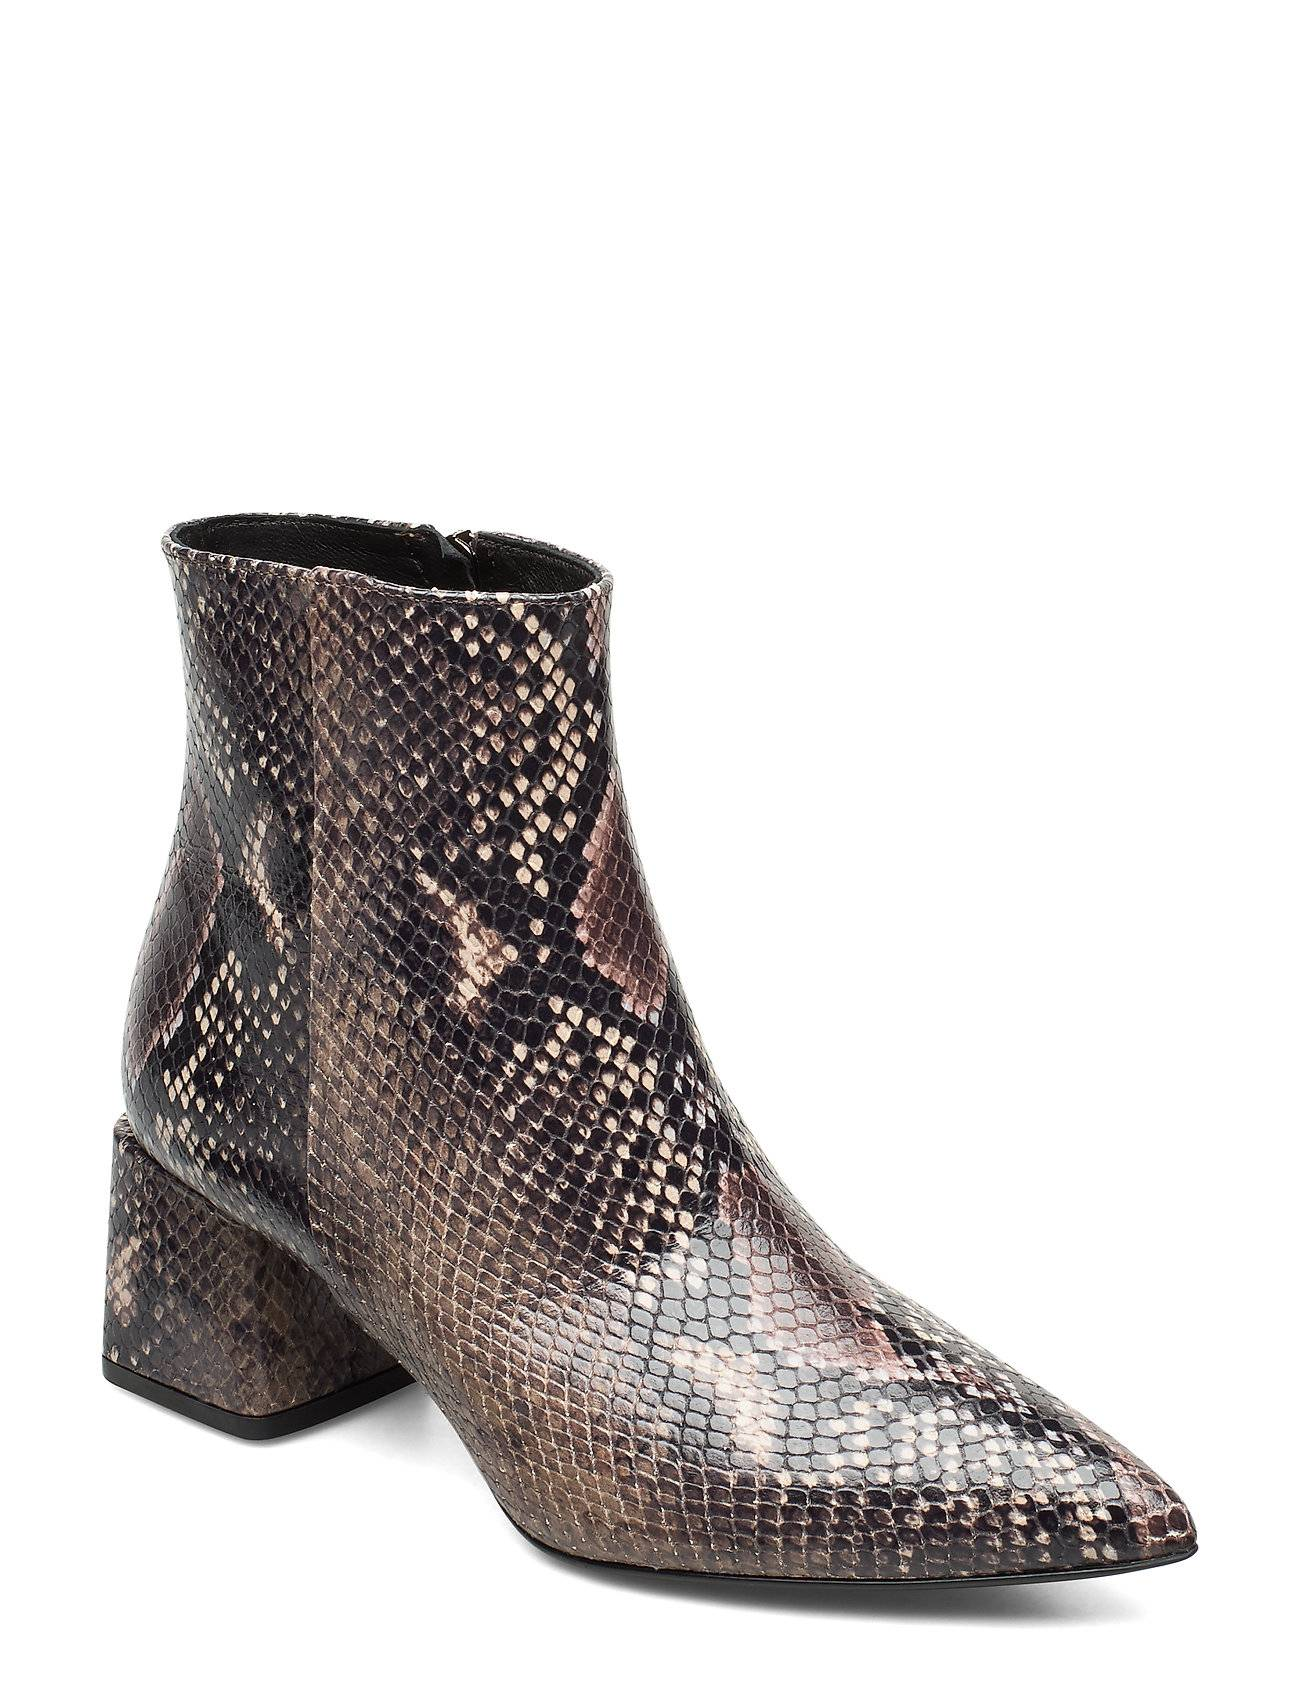 Apair Pointed Bootie Shoes Boots Ankle Boots Ankle Boots With Heel Ruskea Apair